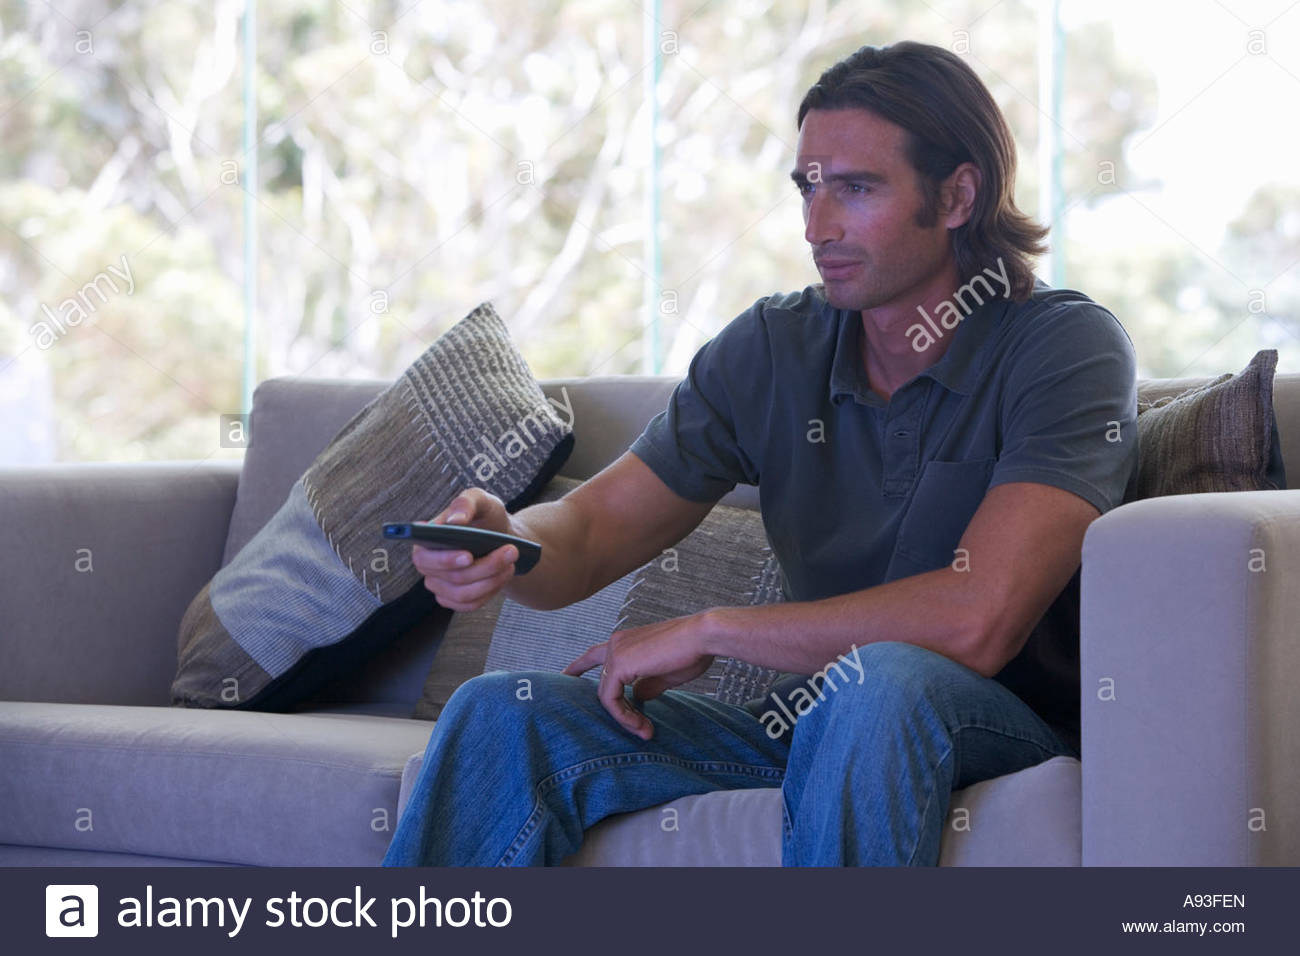 A man using a remote control watching tv - Stock Image